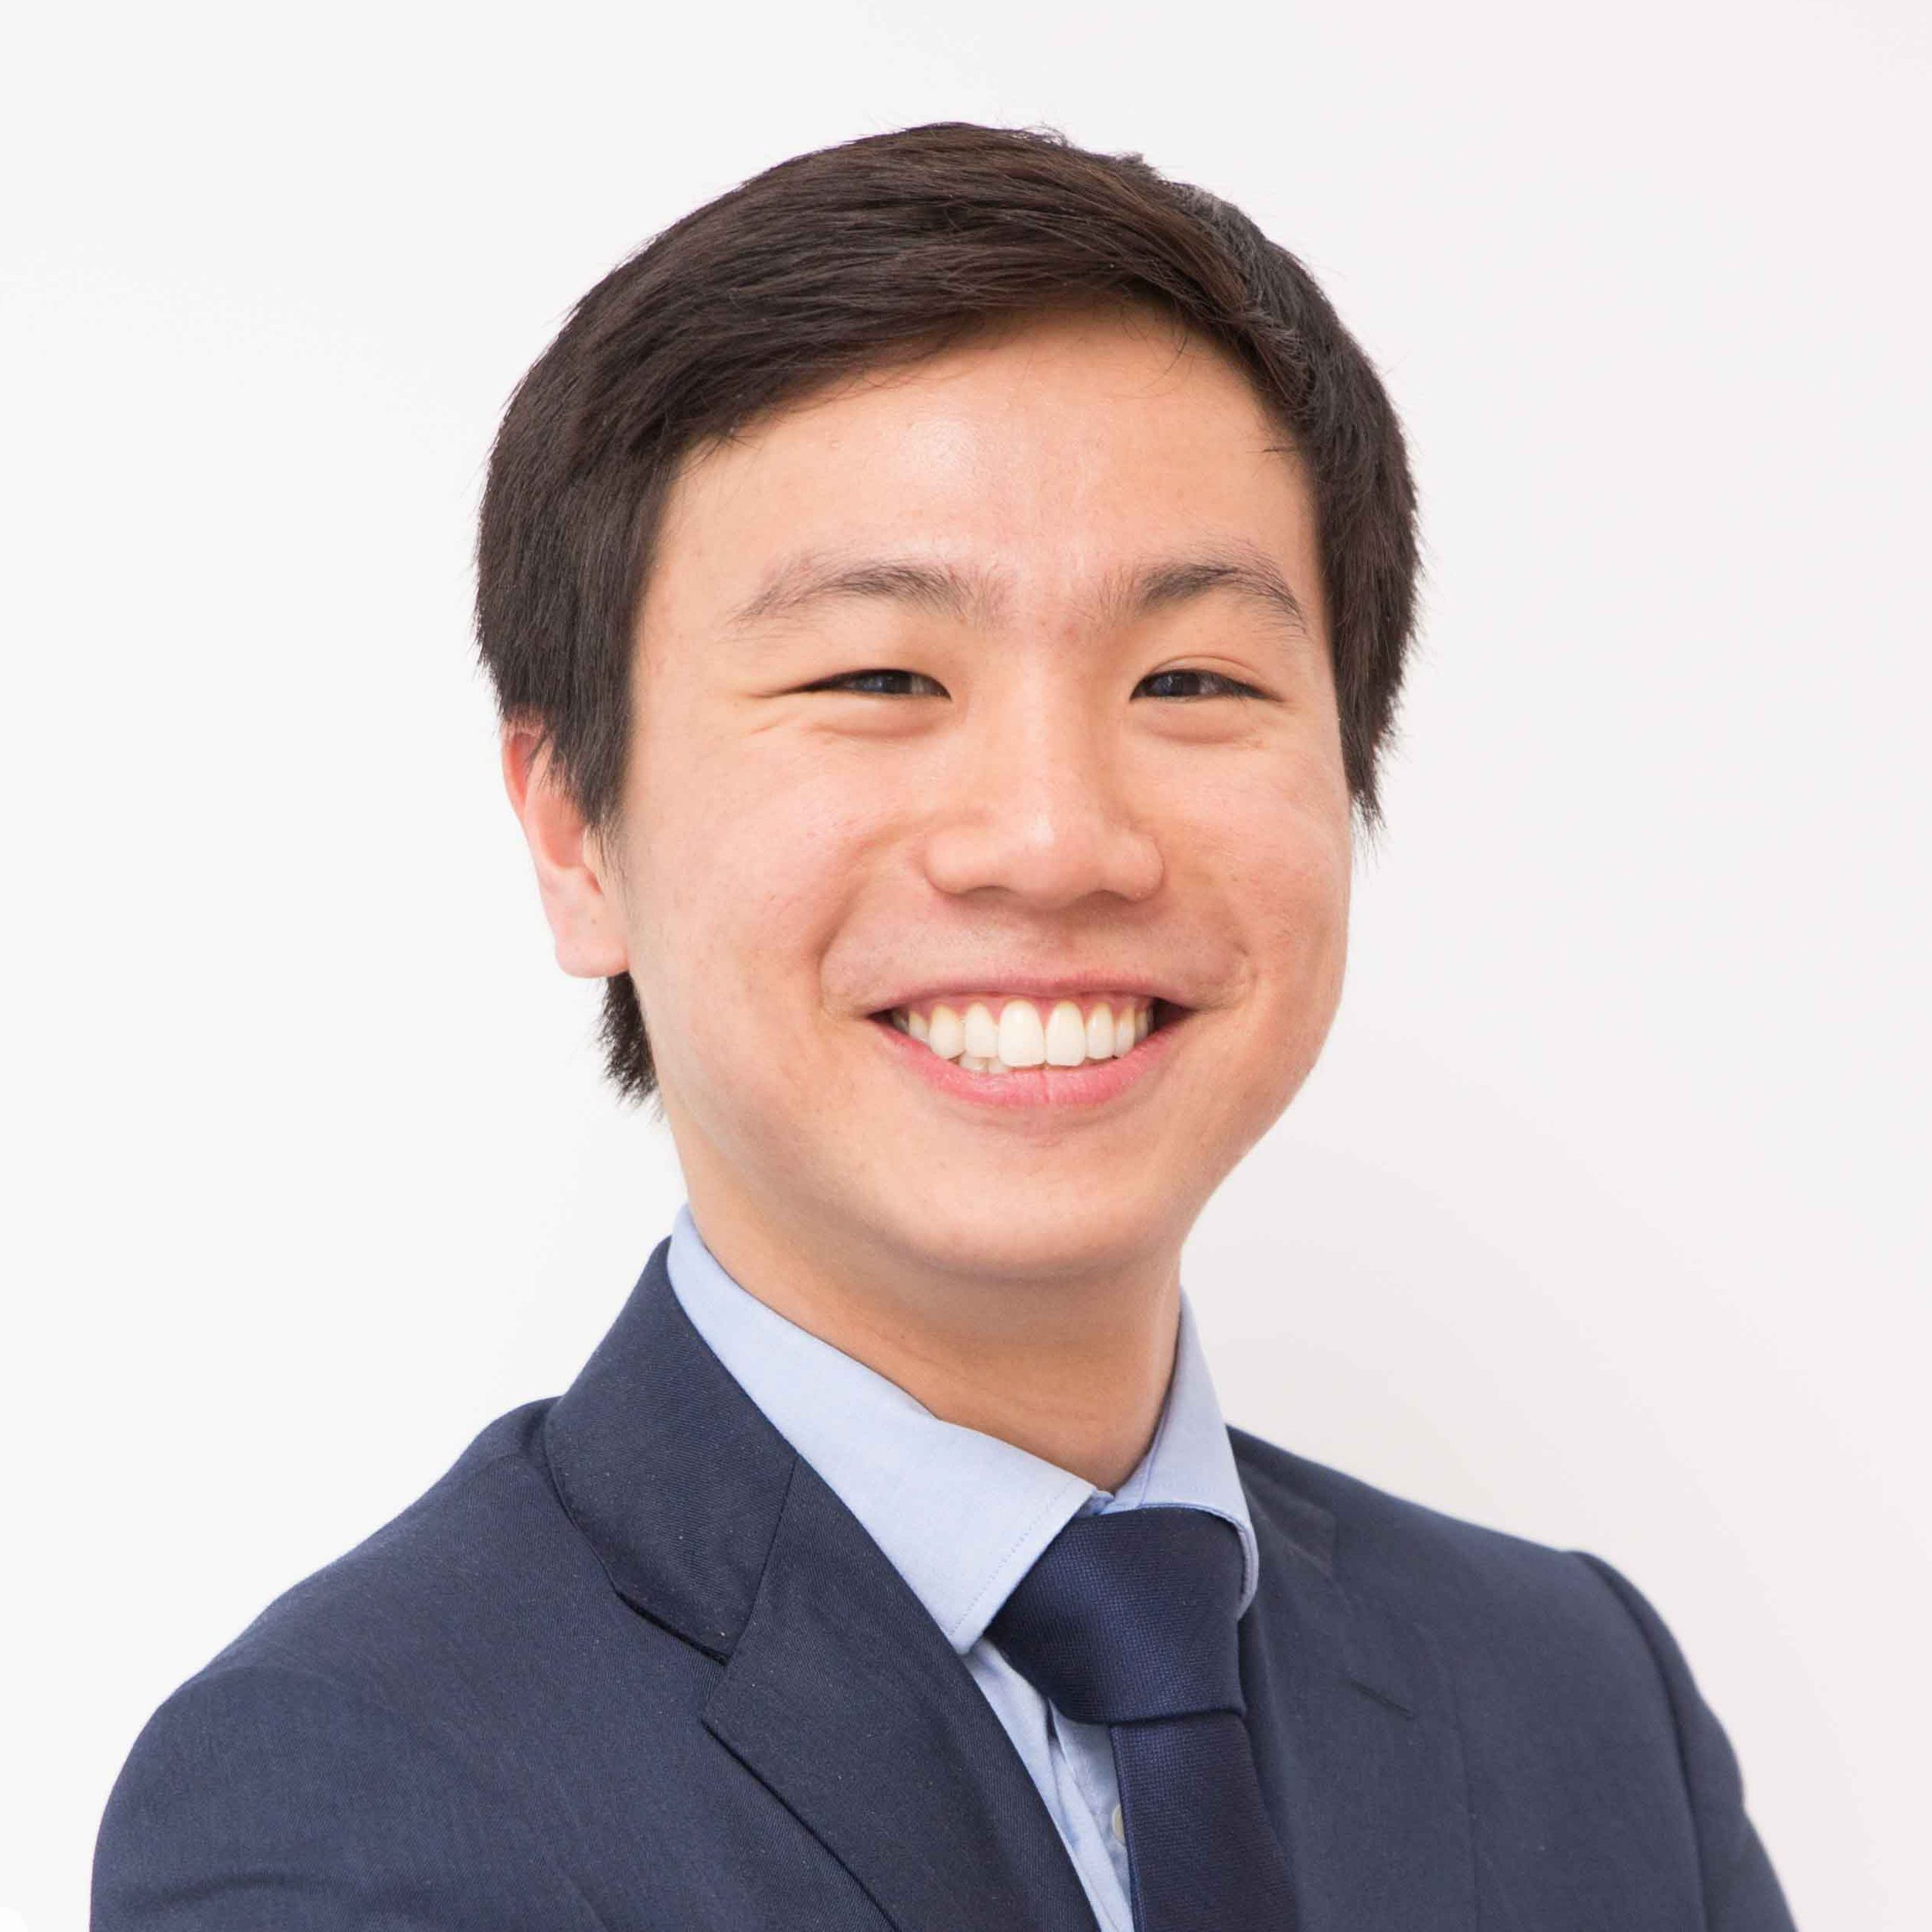 Profile picture of Vincent Wu, the Vice President of Marketing at NOBE National